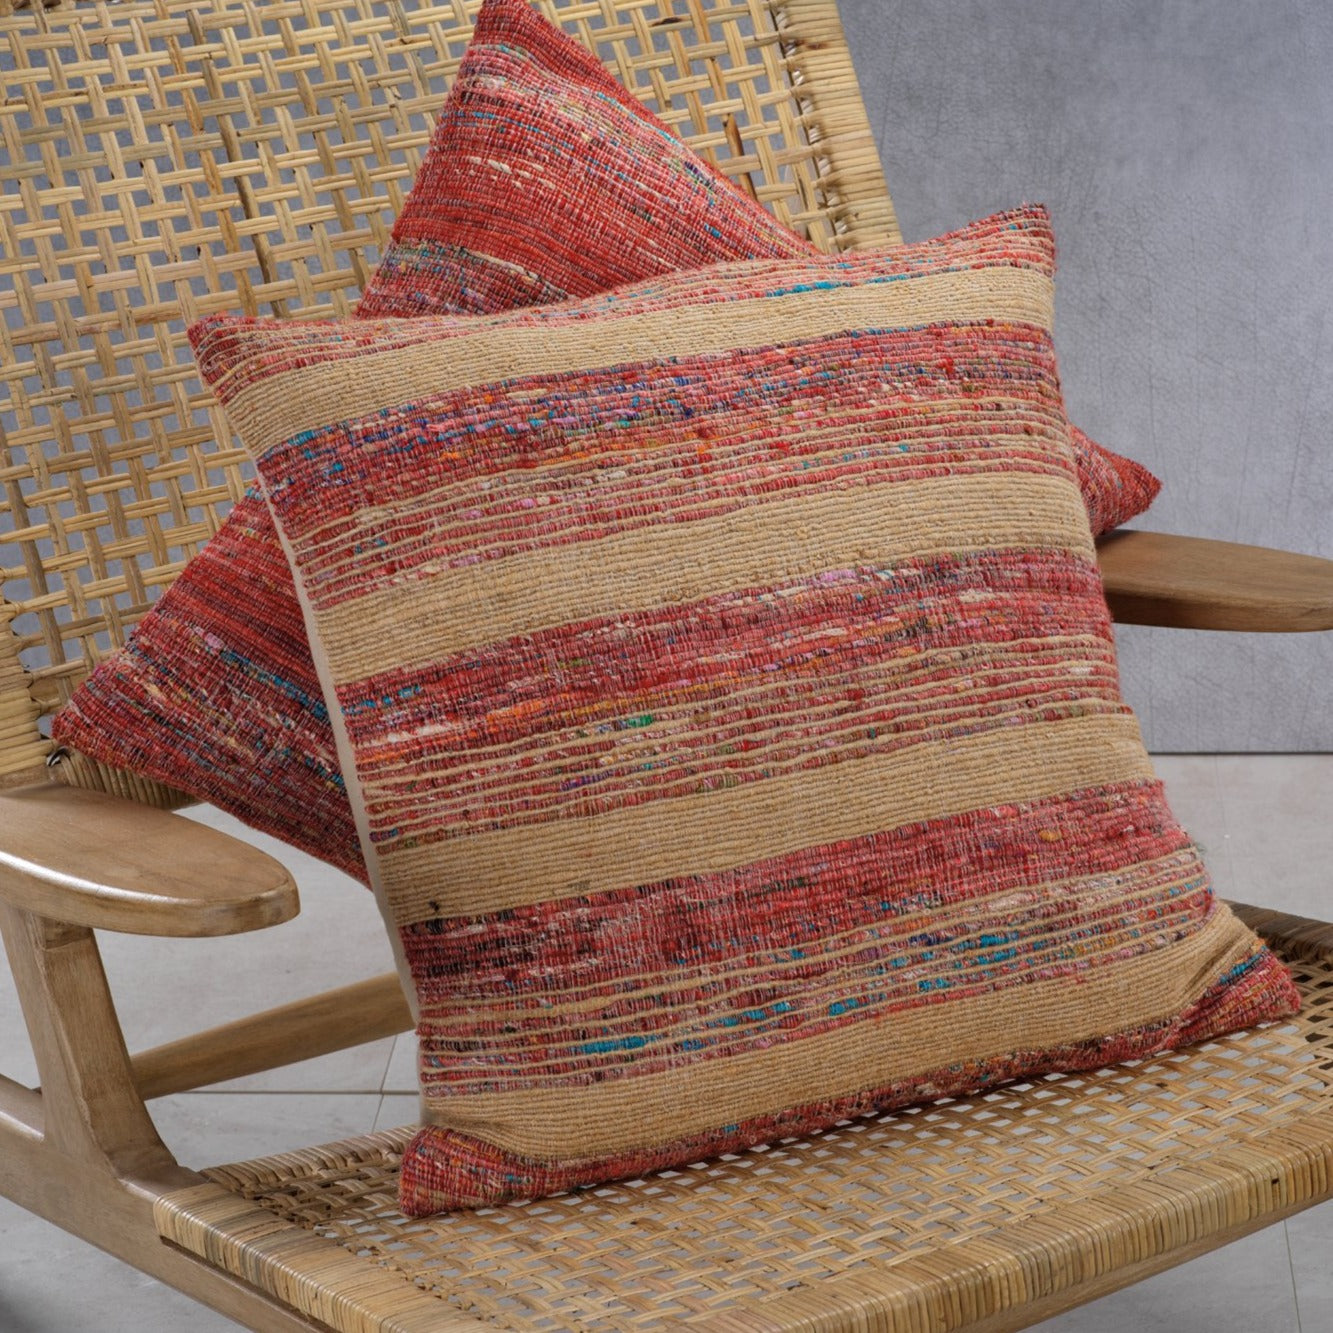 Masseria Cotton Throw Pillow - Multi Color w/ Natural Accent